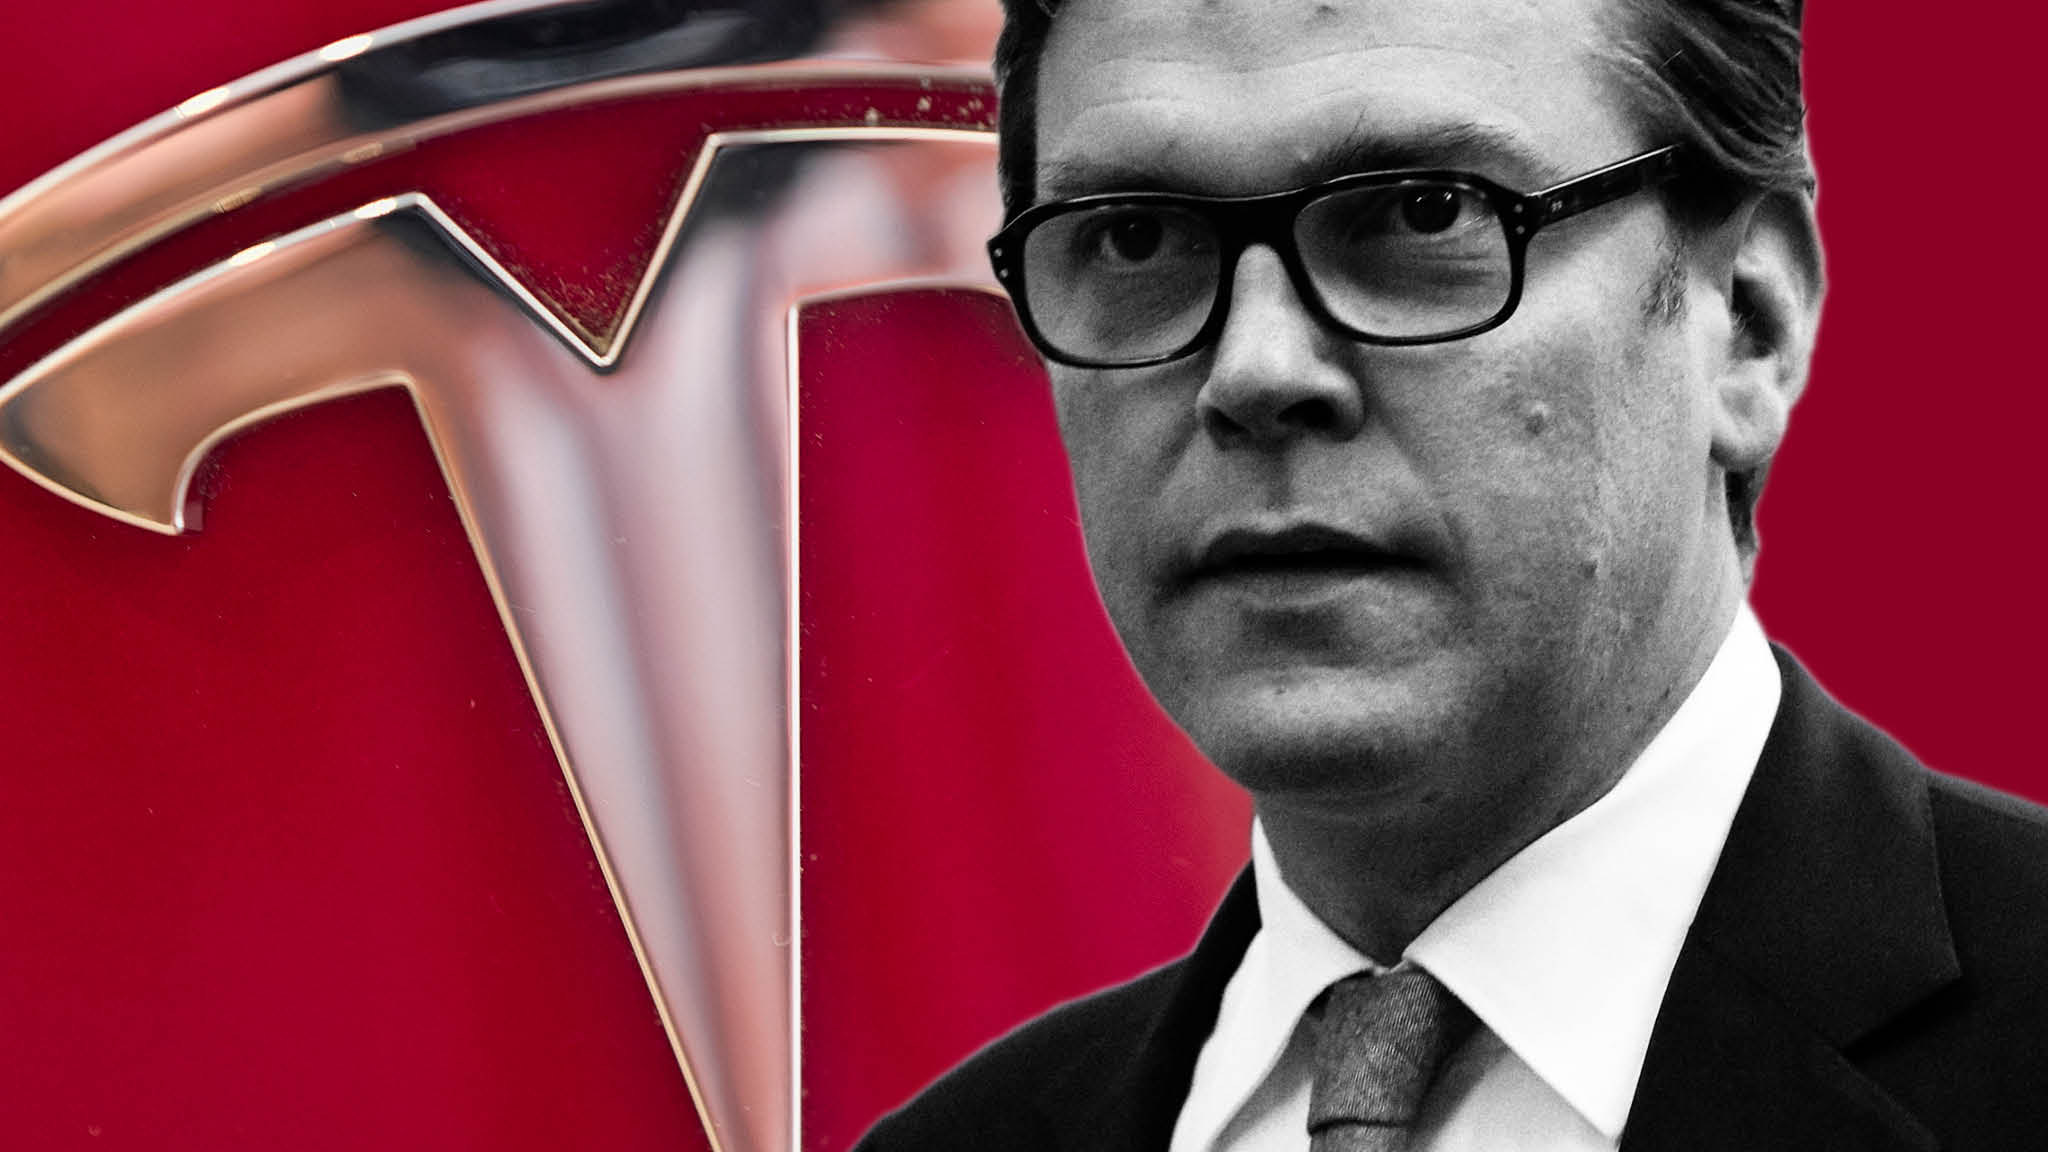 Musk Tesla The James Murdoch In Line To Replace Elon Musk As Tesla Chair